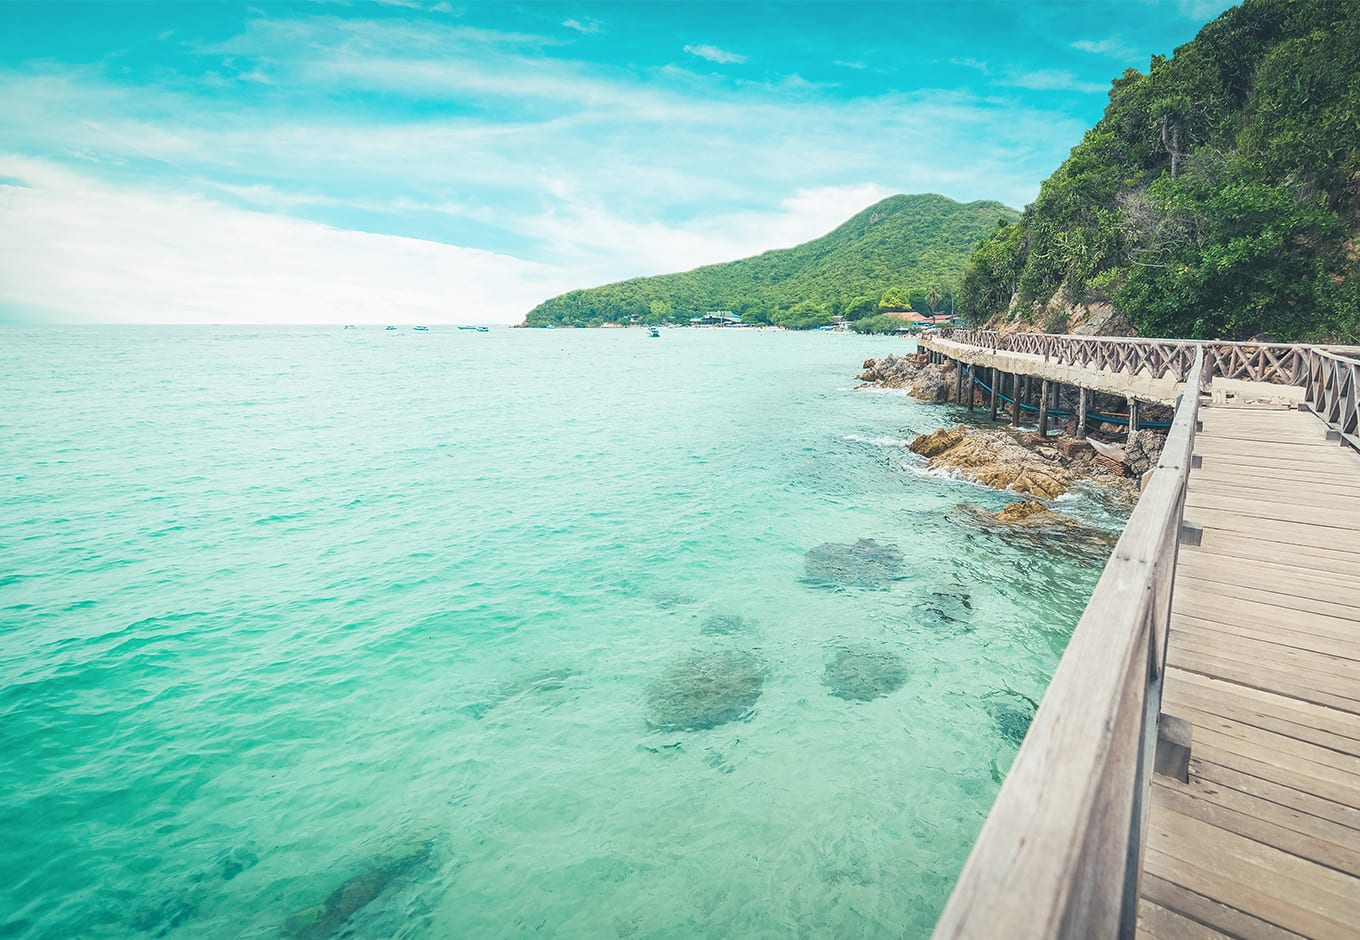 Pattaya vs Chiang Mai: Where You Should Travel To According to Your Personality